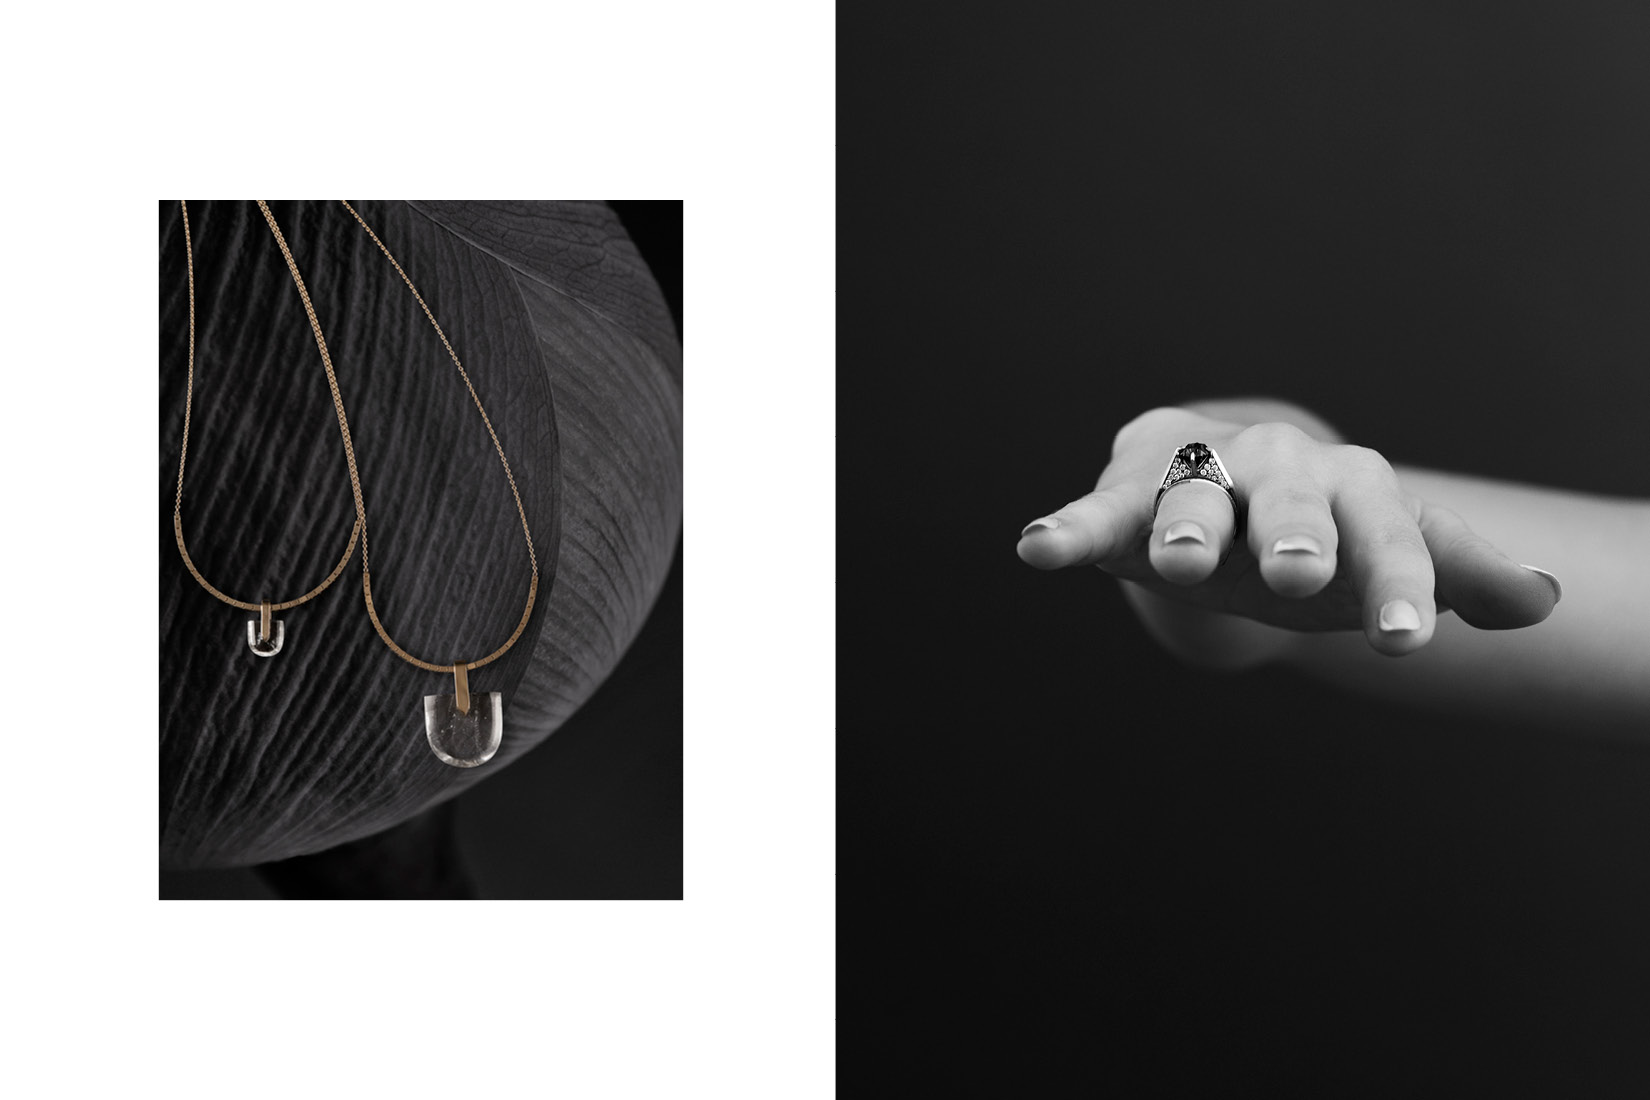 Jewelry for Bliss Lau's life collection, shot by DTE in our in-house studio.